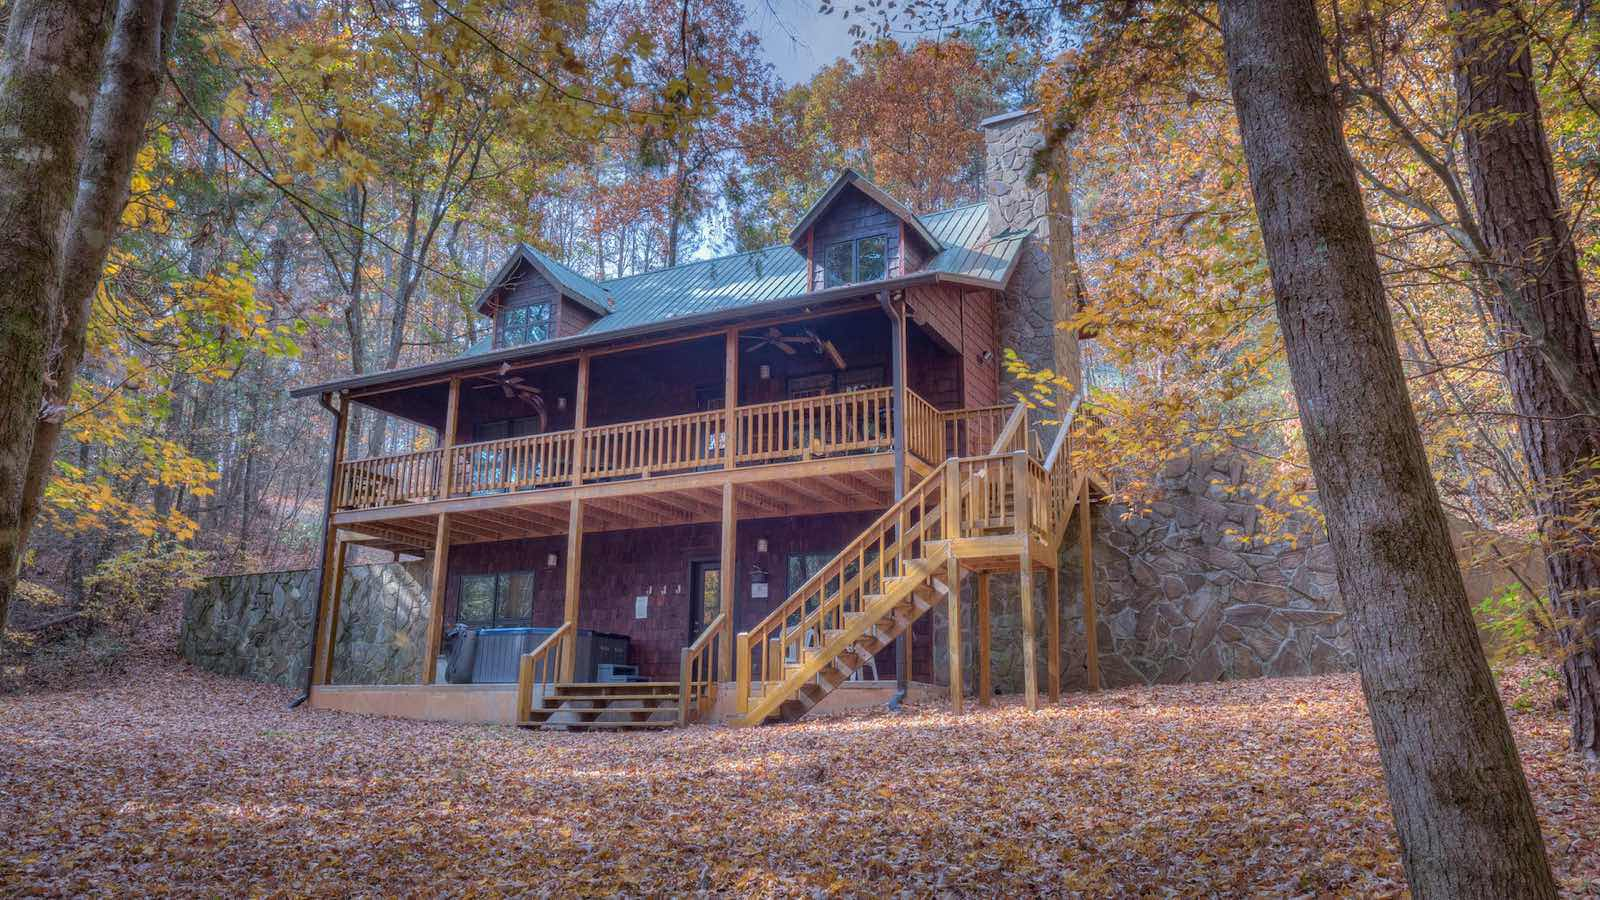 georgia cabins cabin rental pinterest chasing house ga rentals pin dreams in blue ridge ar